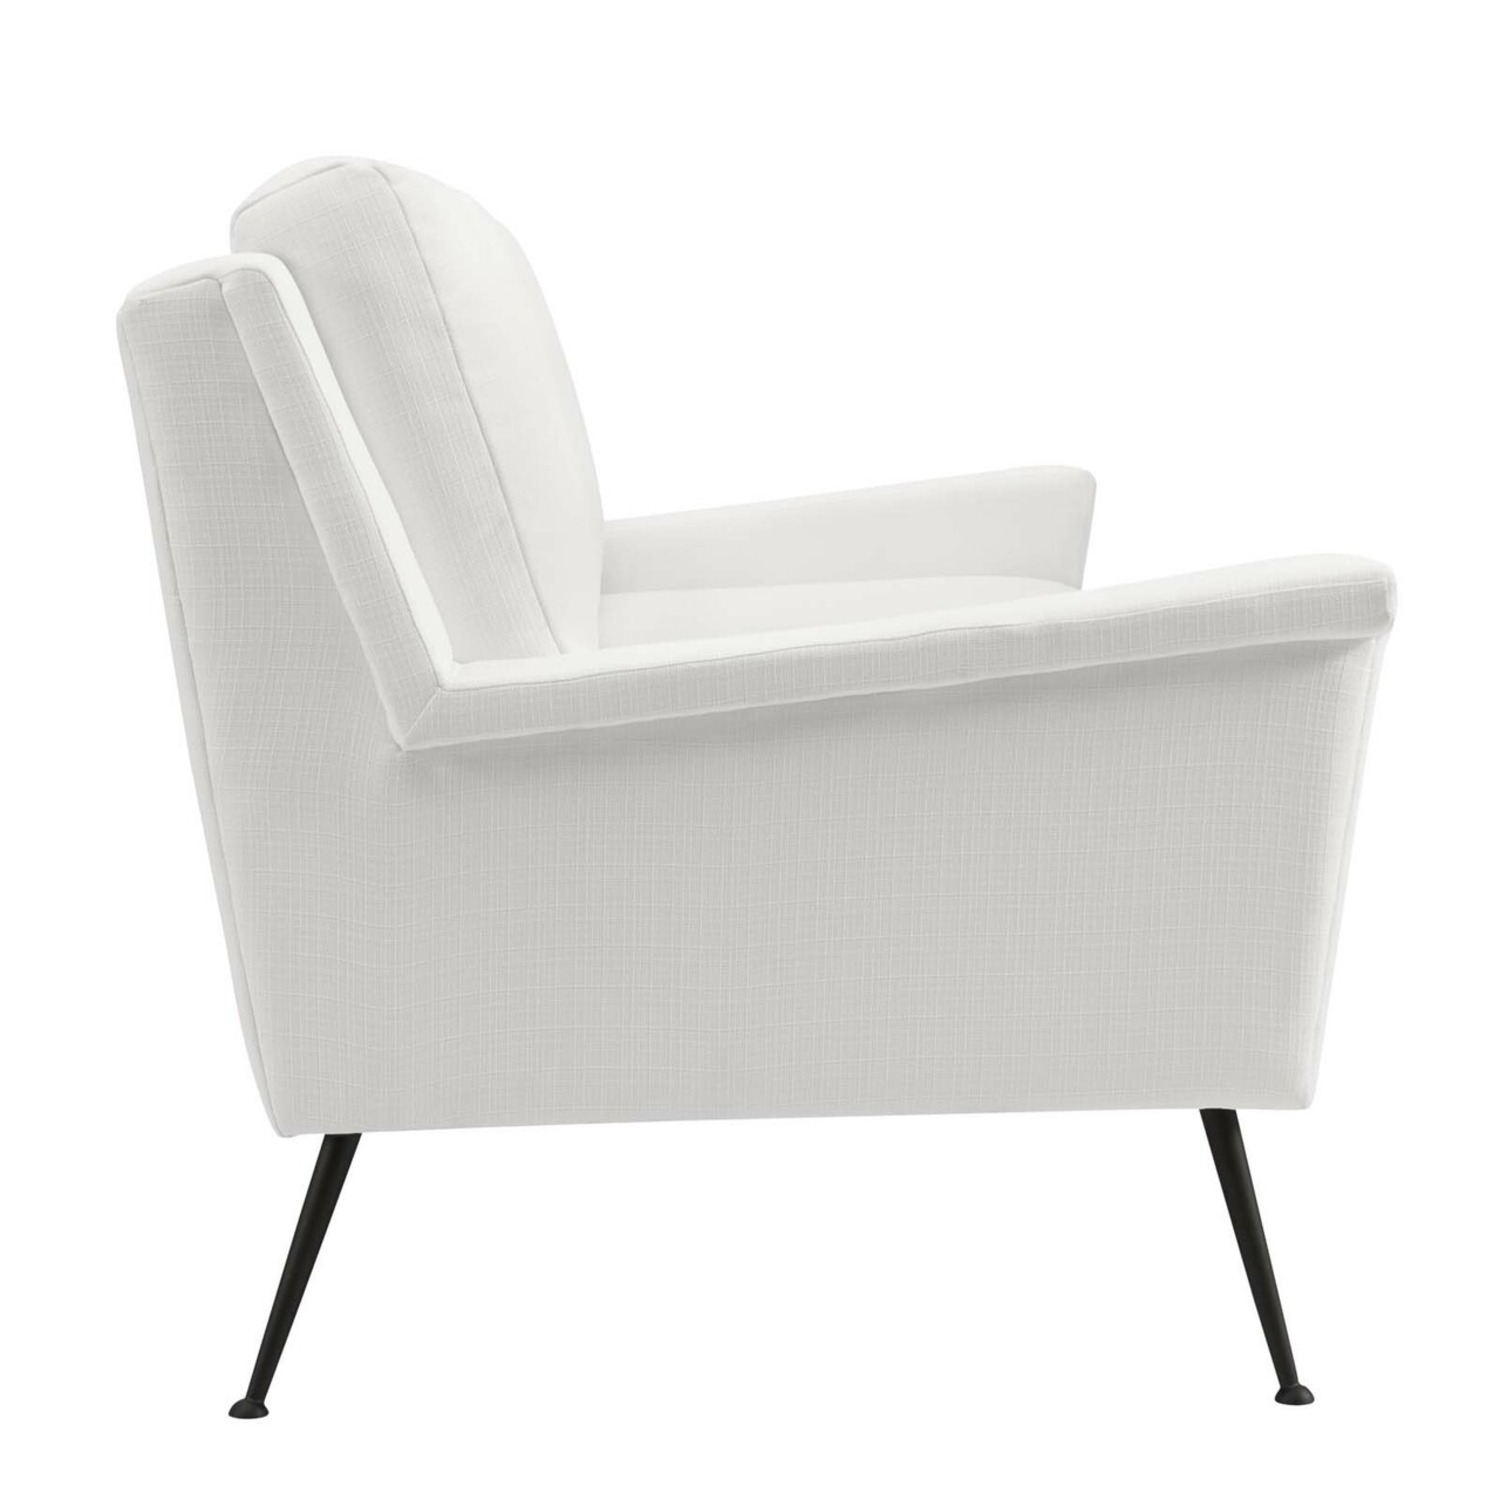 Retro Style Sofa In White Polyester Fabric - image-3